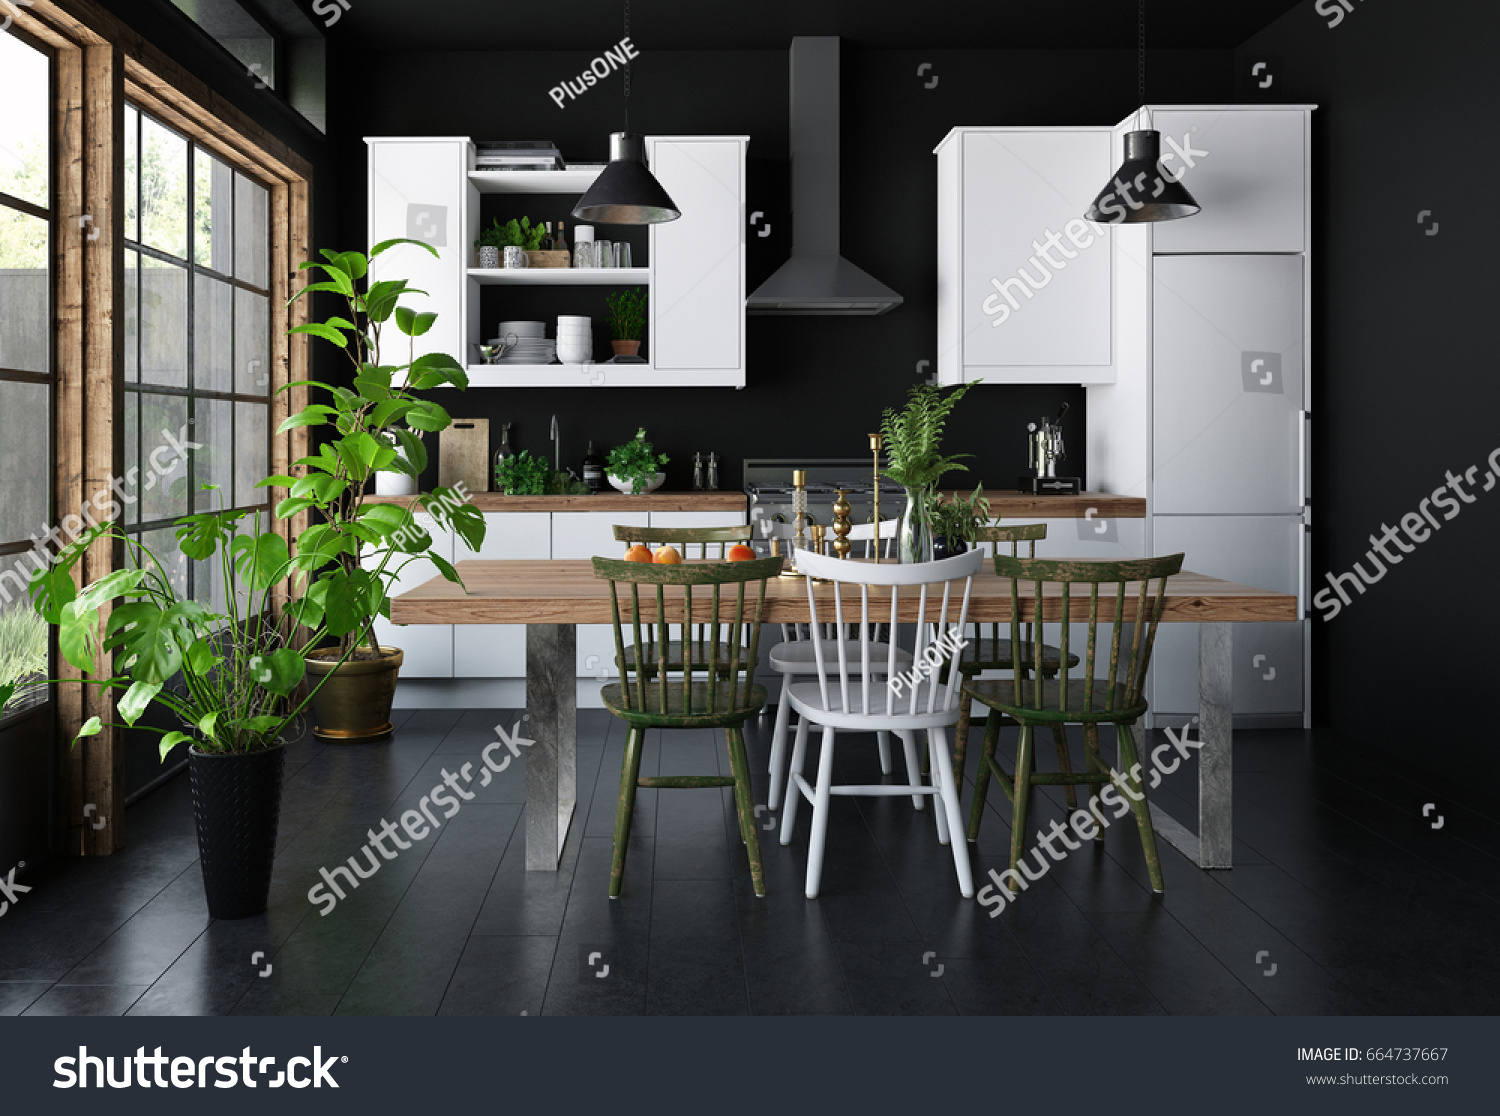 Kitchen with Sunlight Interior Concept photo - 3